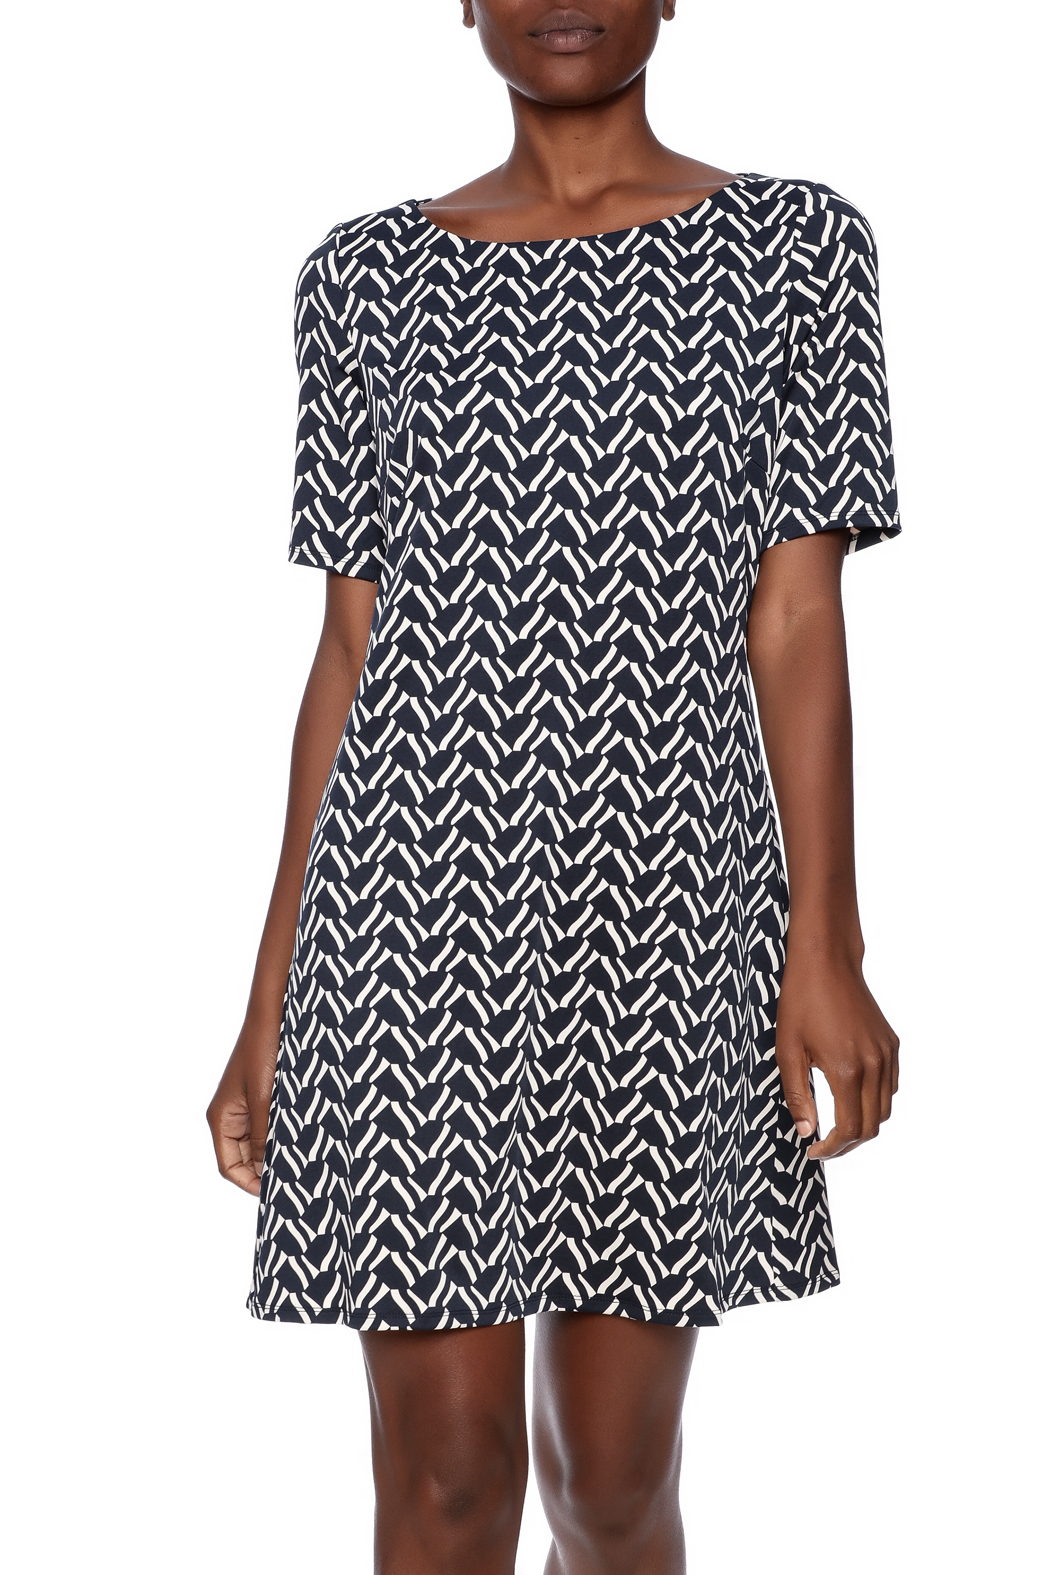 Julie Brown NYC Short Sleeve Dress - Main Image